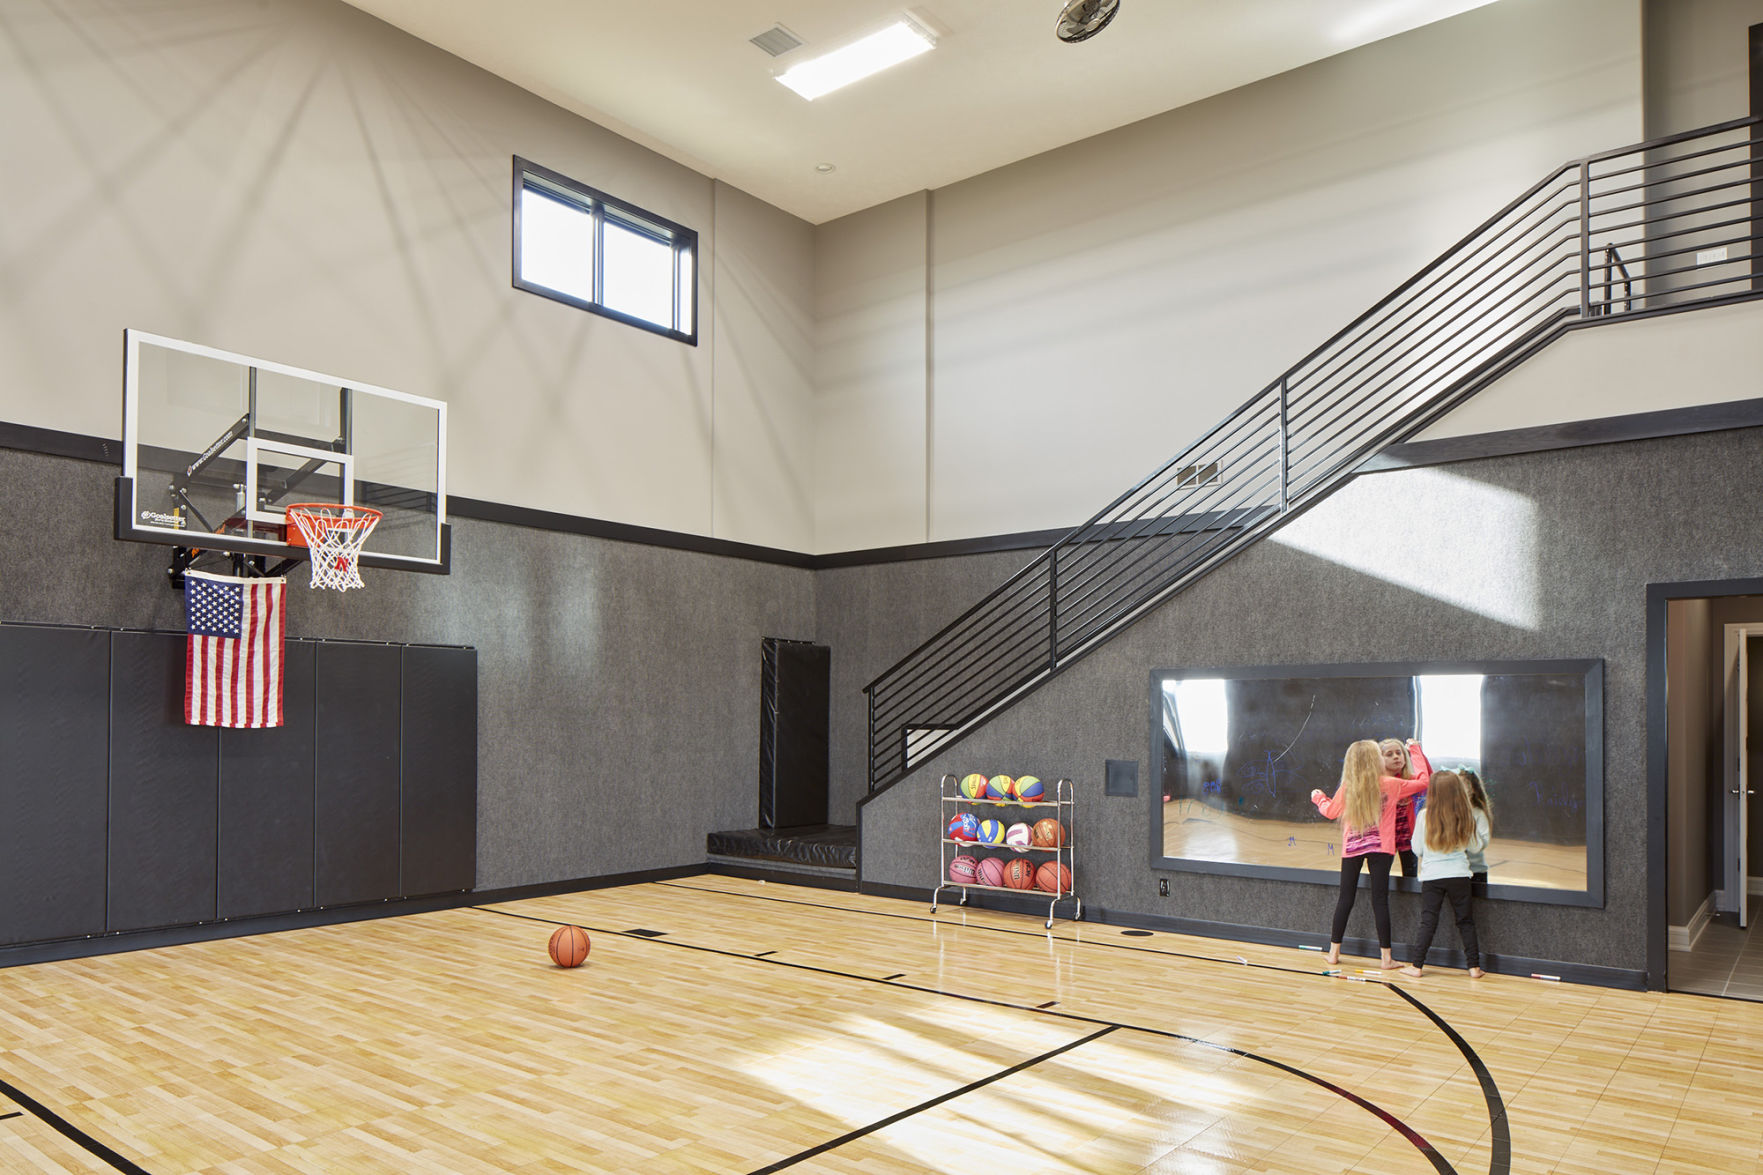 Superb Papillion Familyu0027s Dream House Includes A Sports Court With A Steel Slide  Inspired By Those At Gene Leahy Mall | Inspired Living | Omaha.com